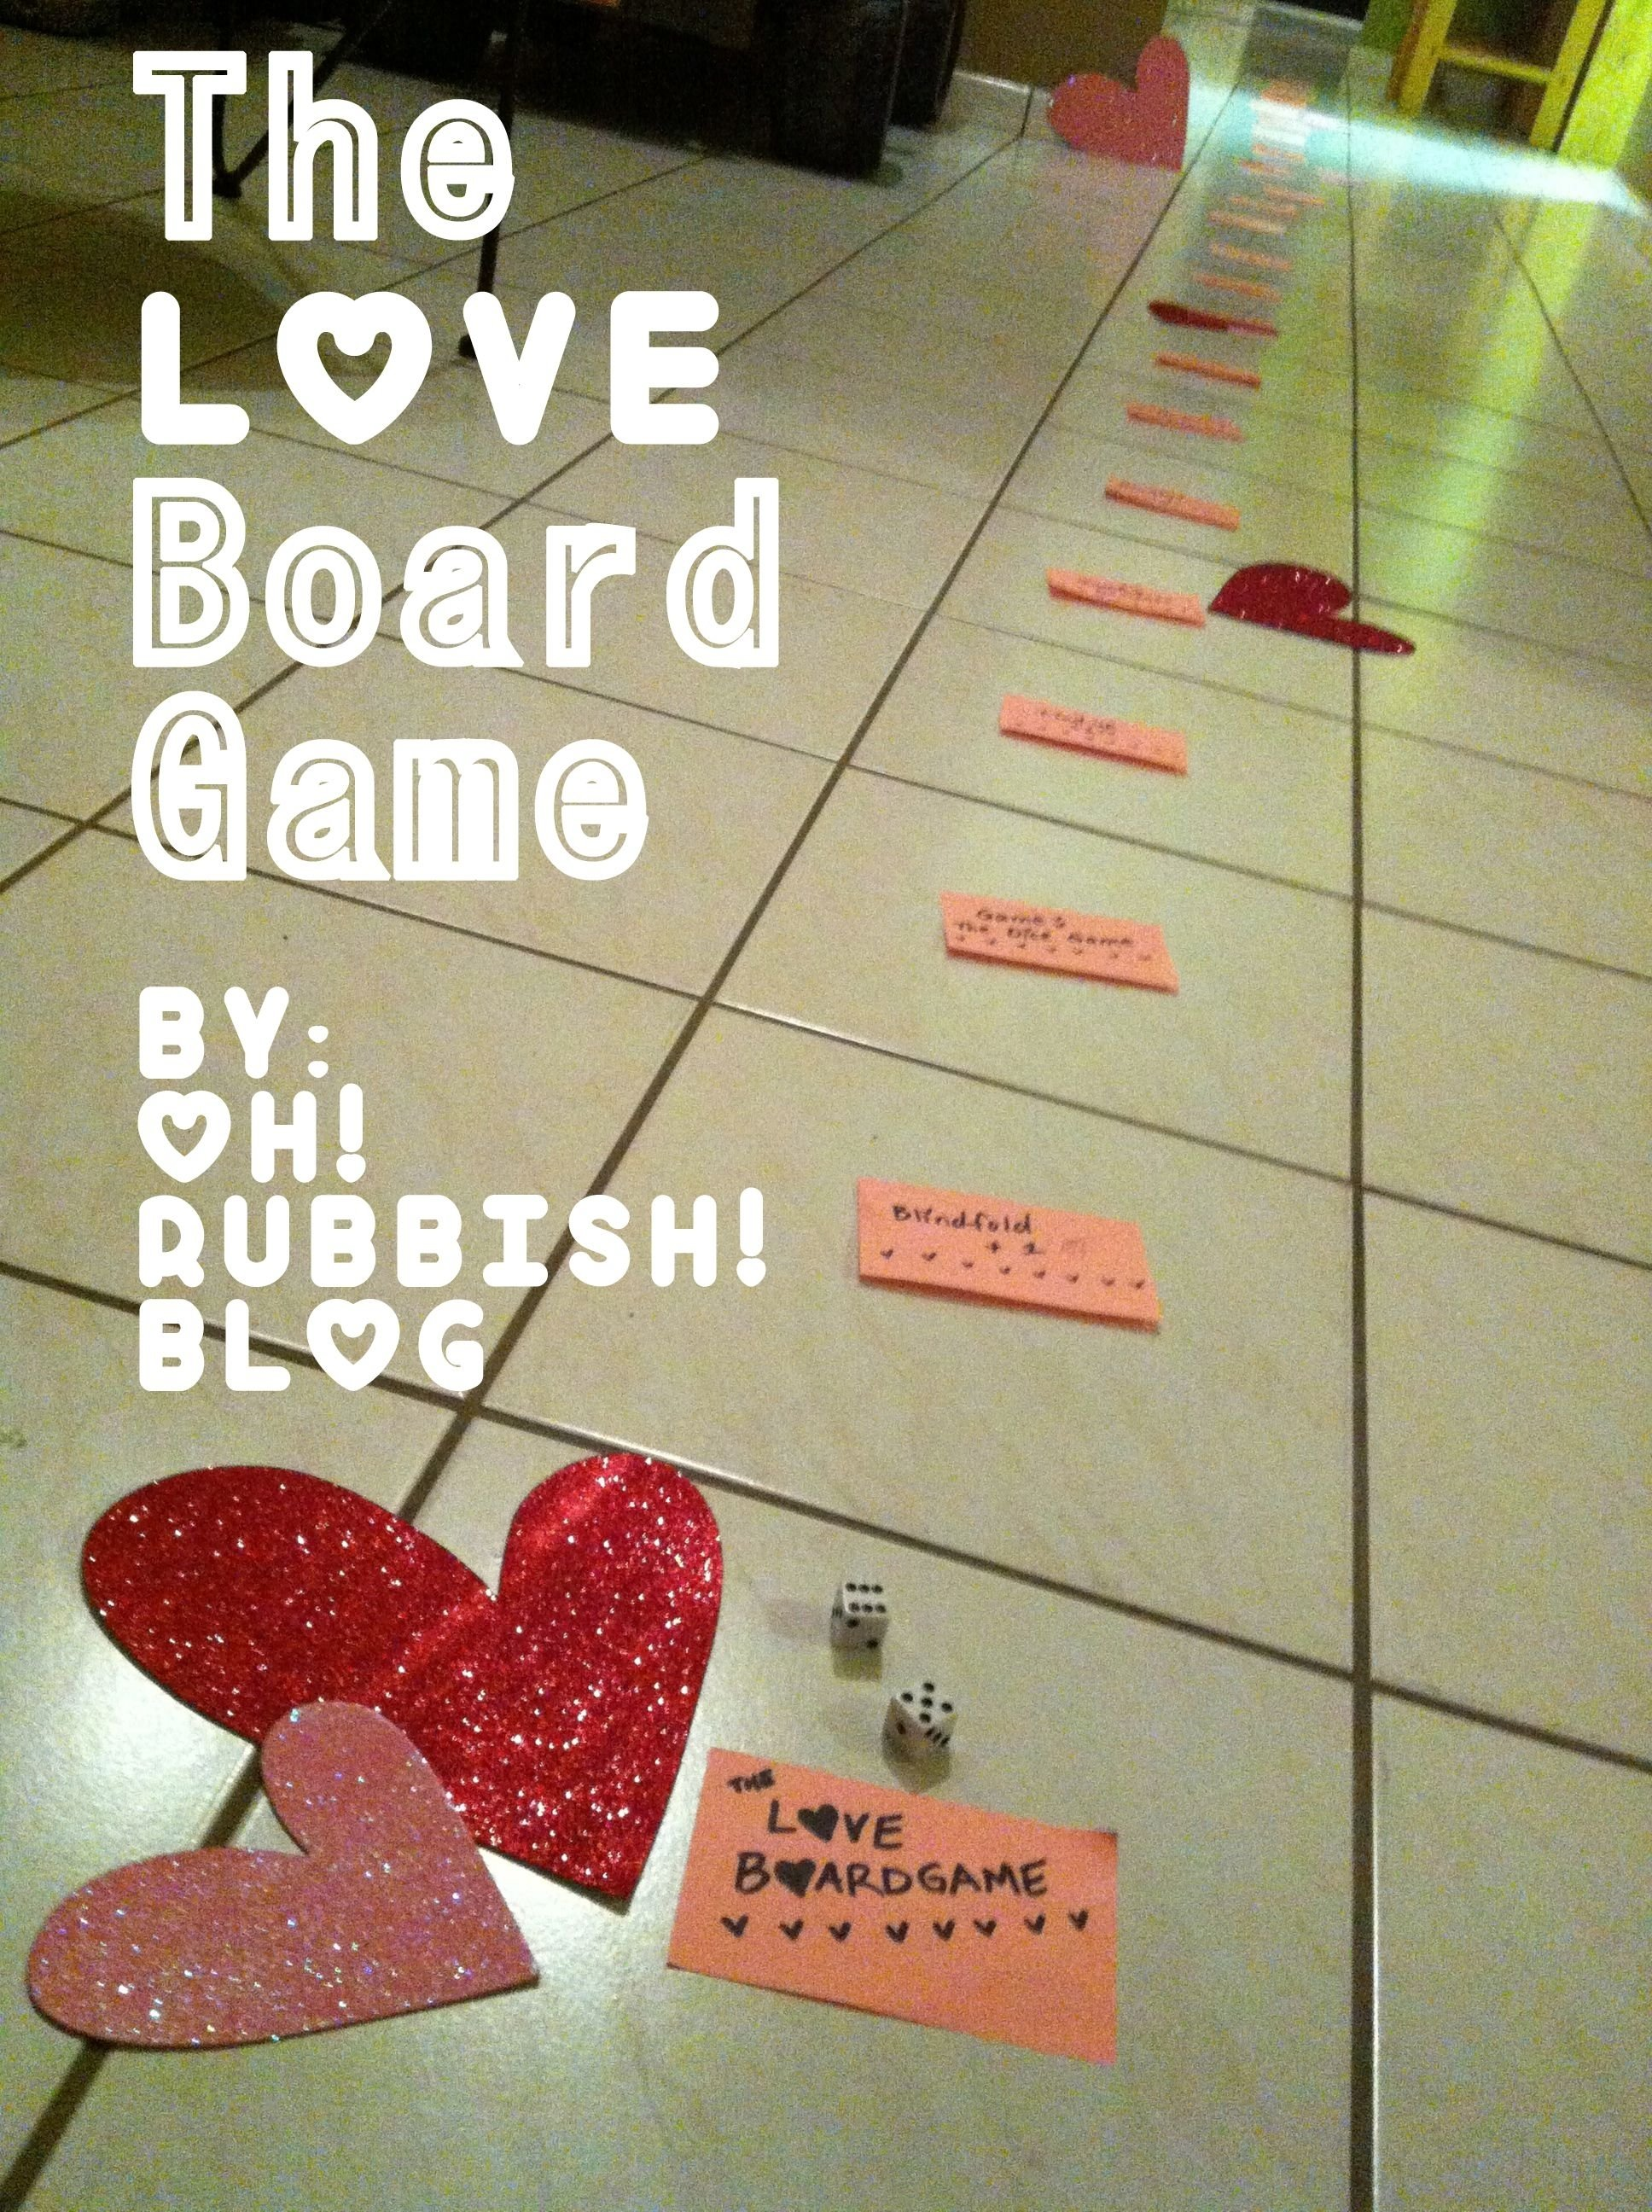 10 Stunning Valentine Day Gift Ideas For Husband the love board game valentine game for couples valentine day 18 2021